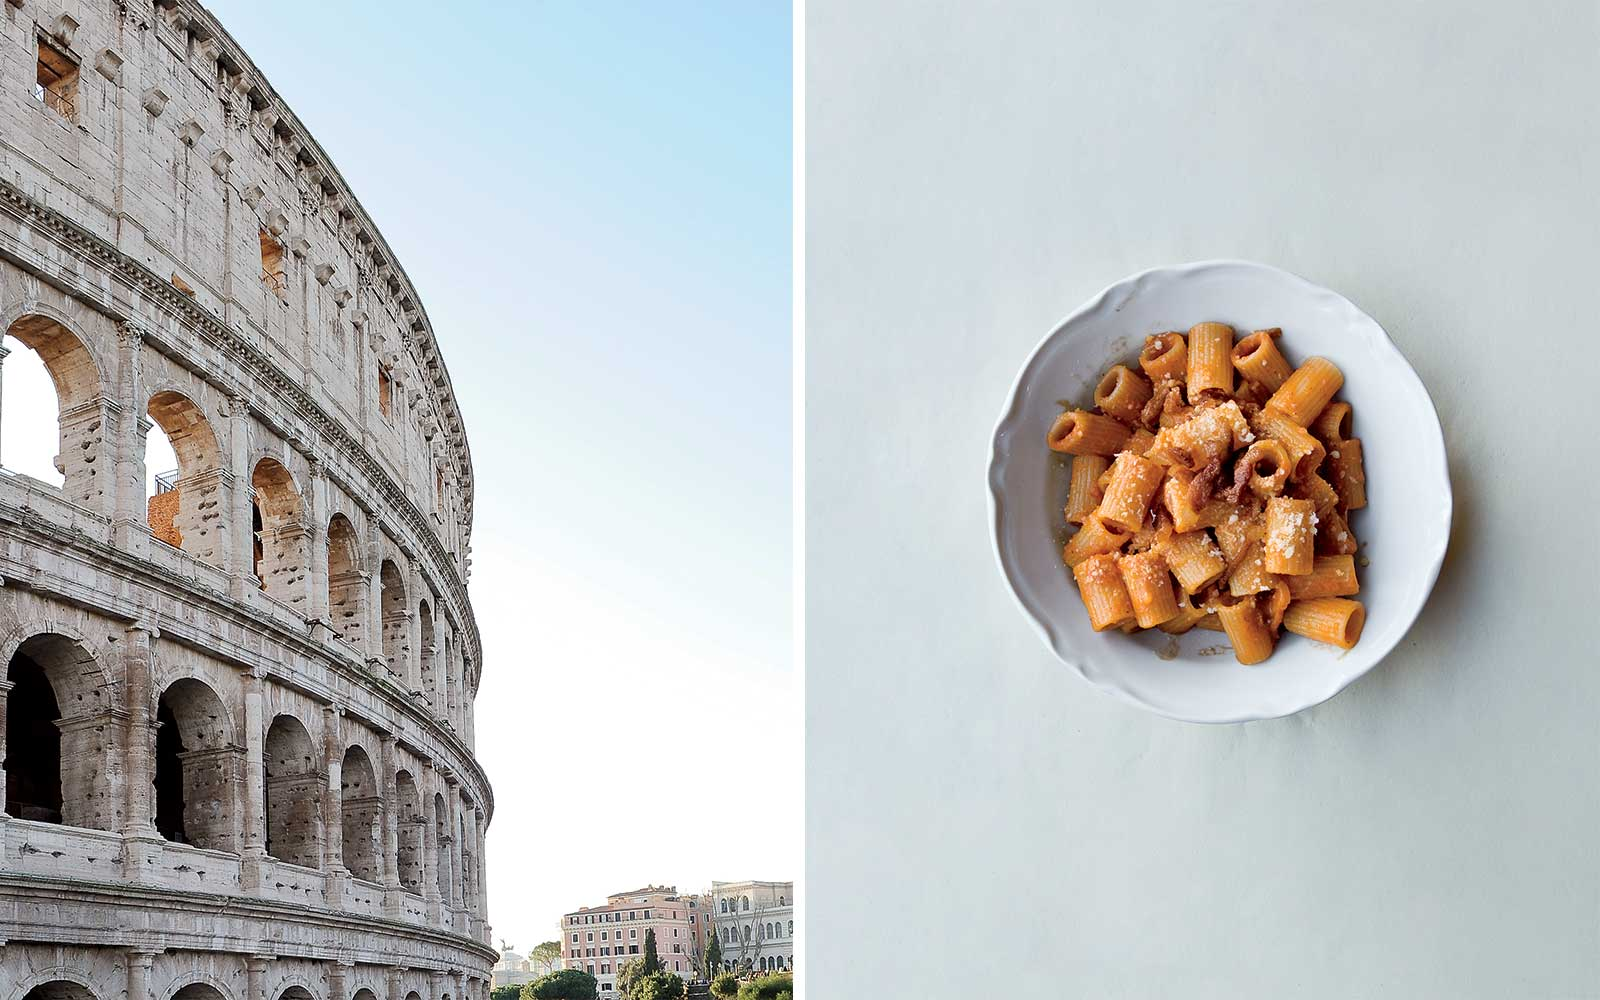 Rome Colosseum and pasta